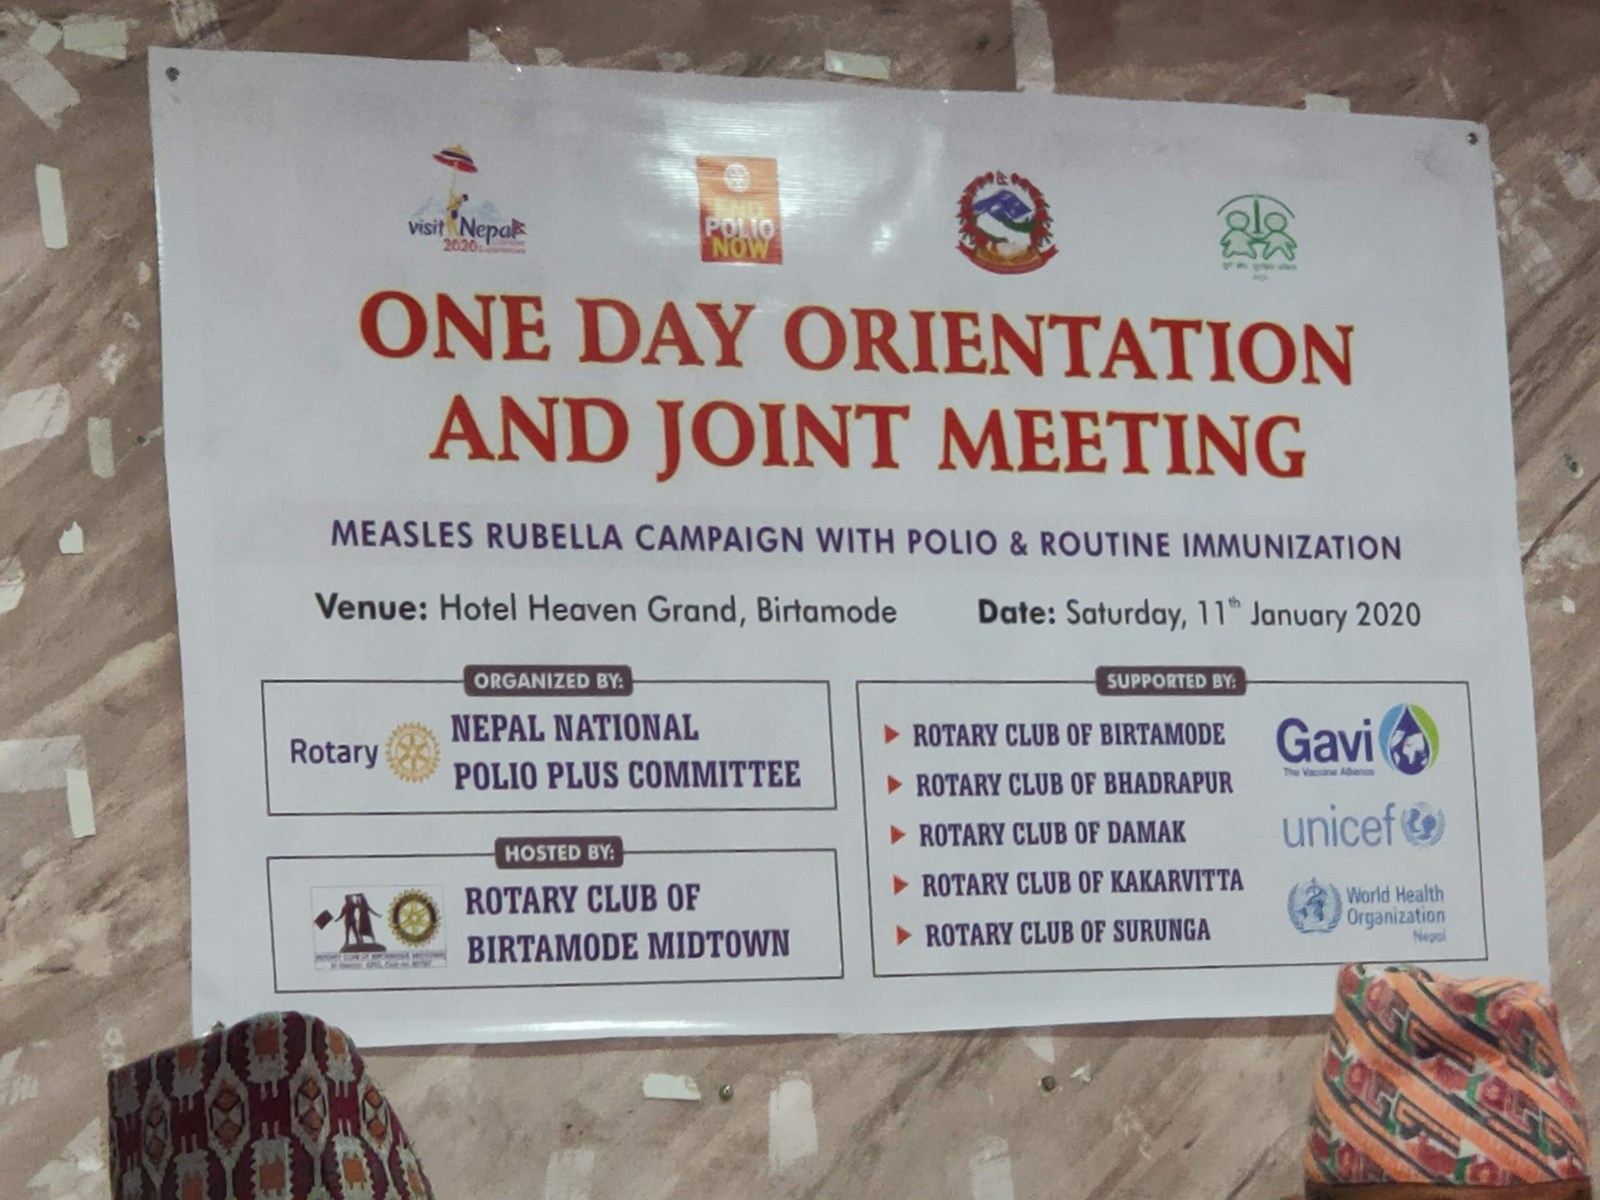 One Day Orientation Joint Meeting About Immunization Rotary Club Of Kakarvitta 4